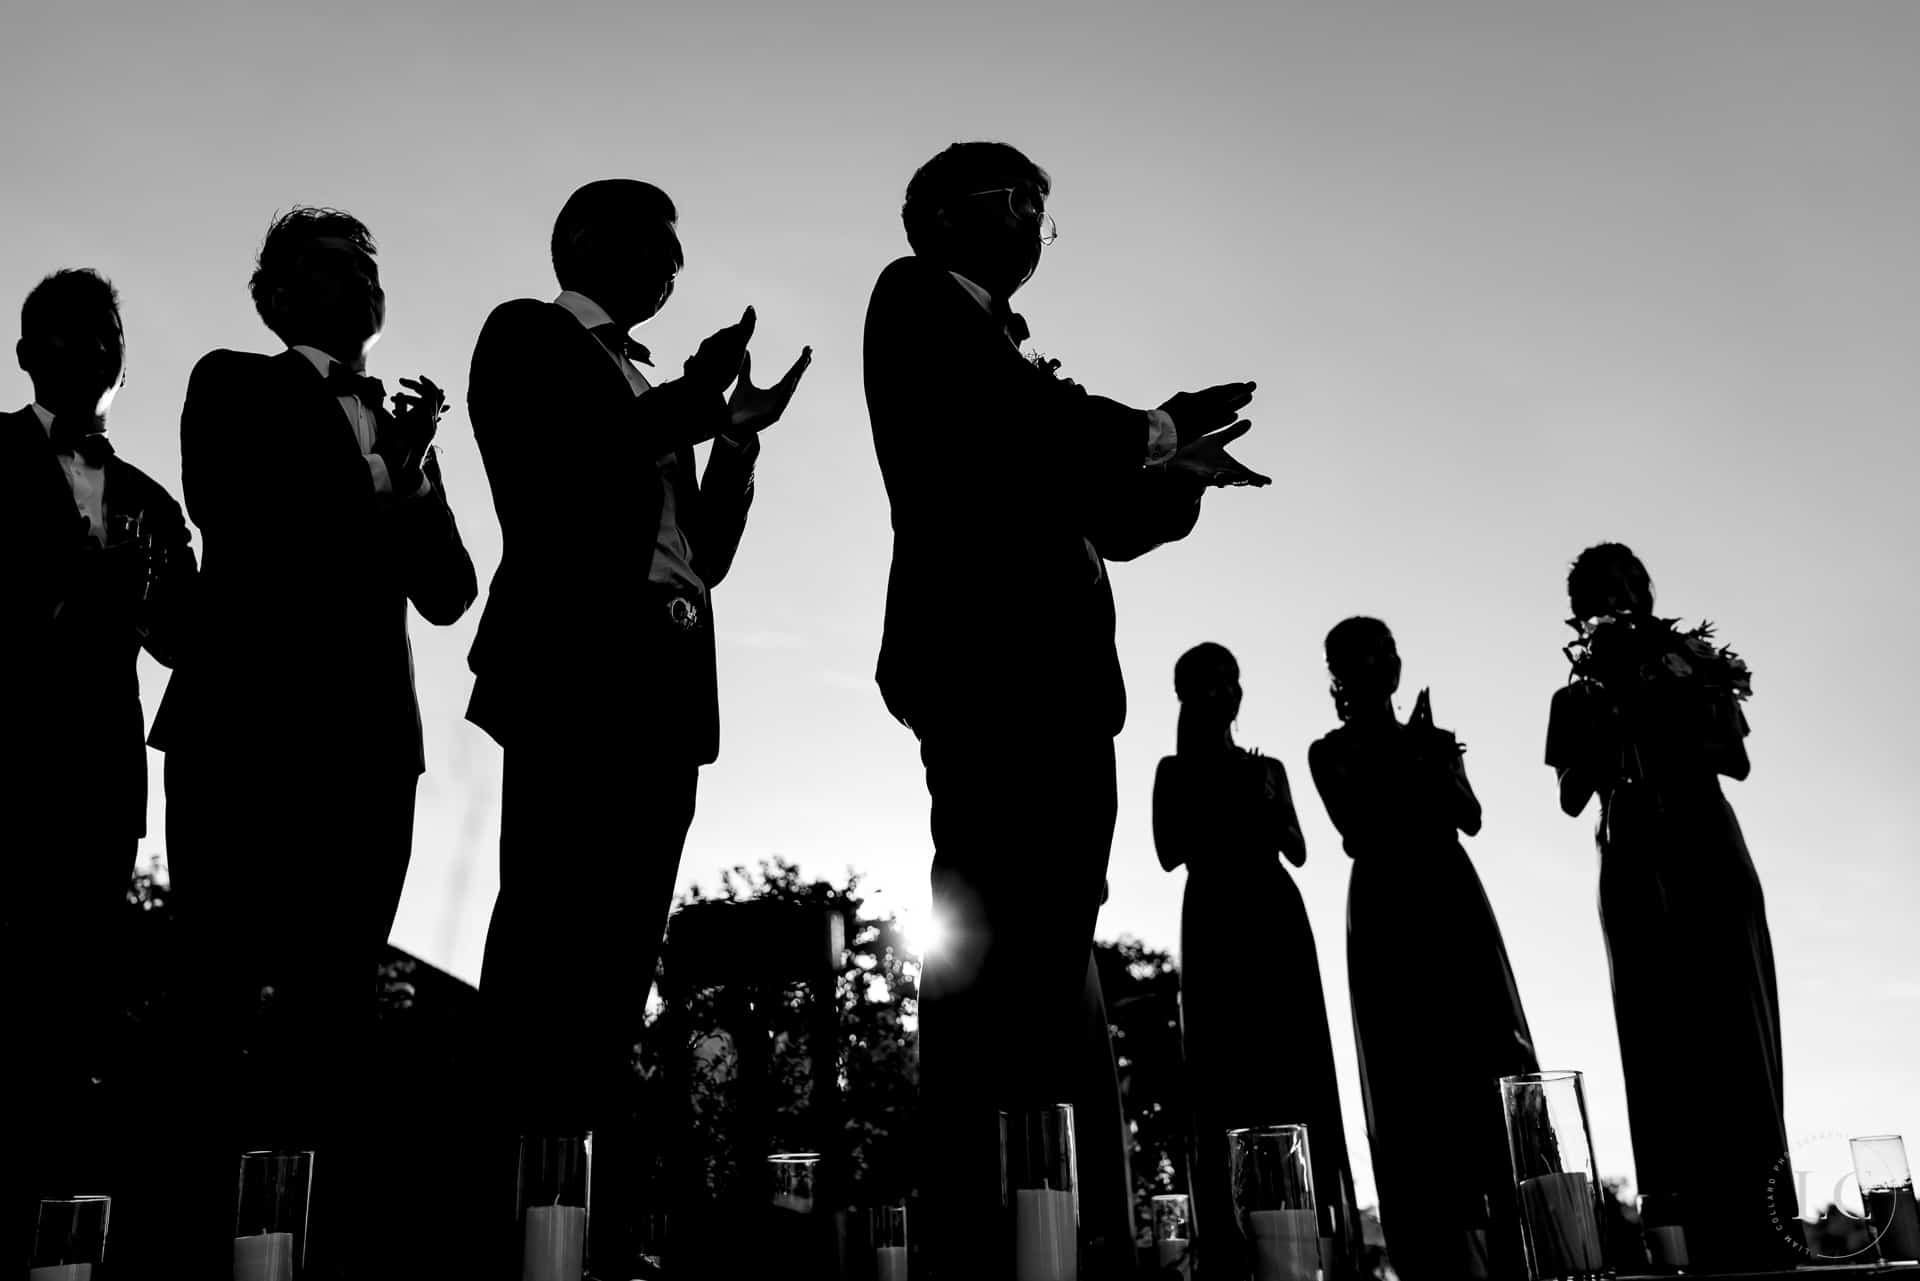 Bridesmaids and groomsmen shadow